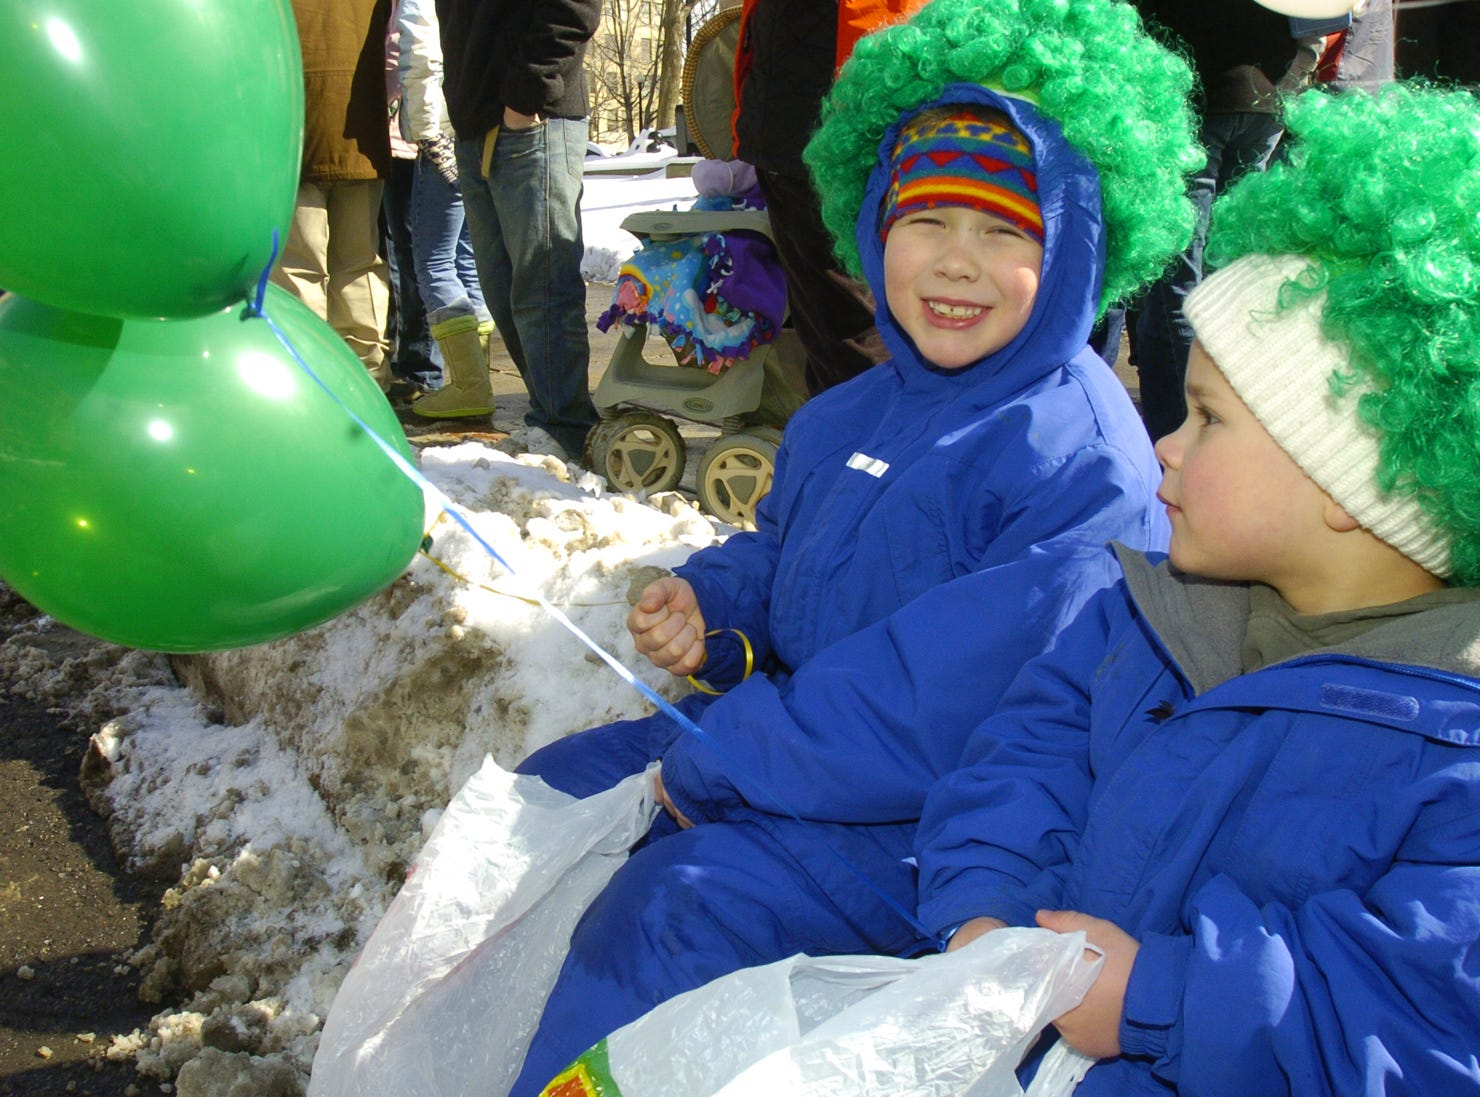 2006: Hunter Gulbin, 7, left, and brother Levi, 3, enjoy front row seats at the St. Patrick's Day Parade in Binghamton on Saturday.